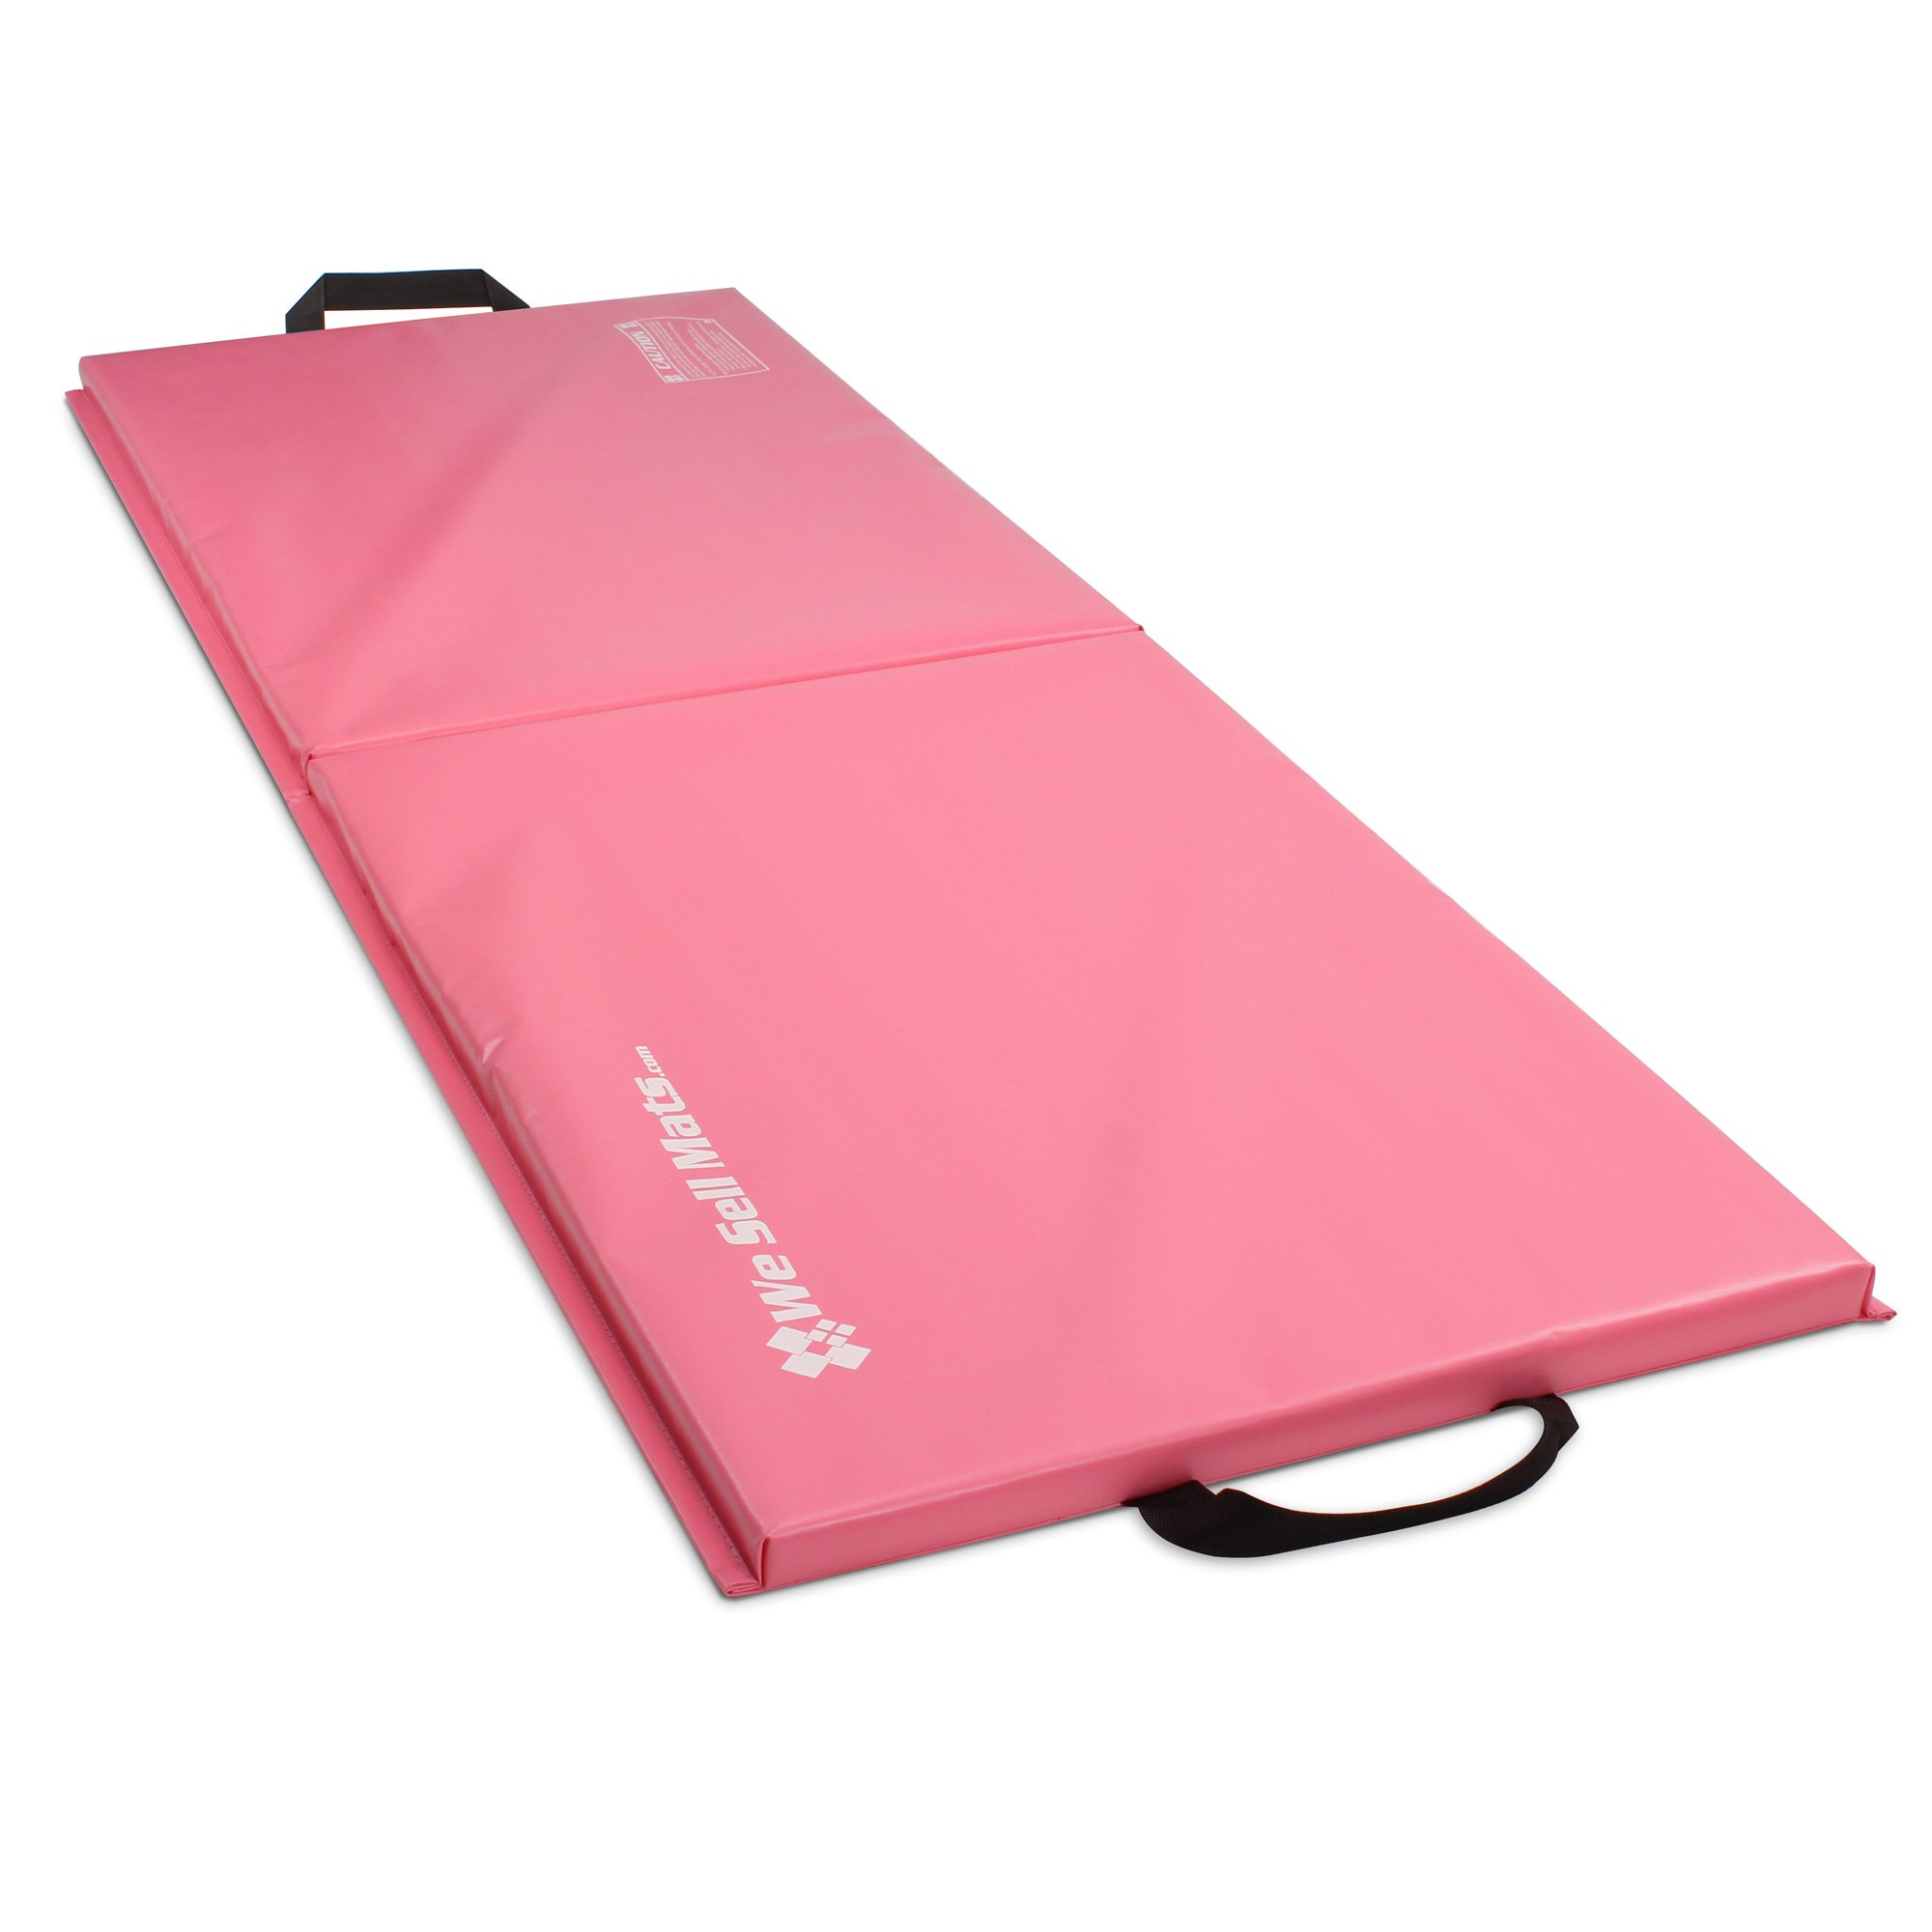 We Sell Mats 2x6 Folding Exercise Mat, Pink